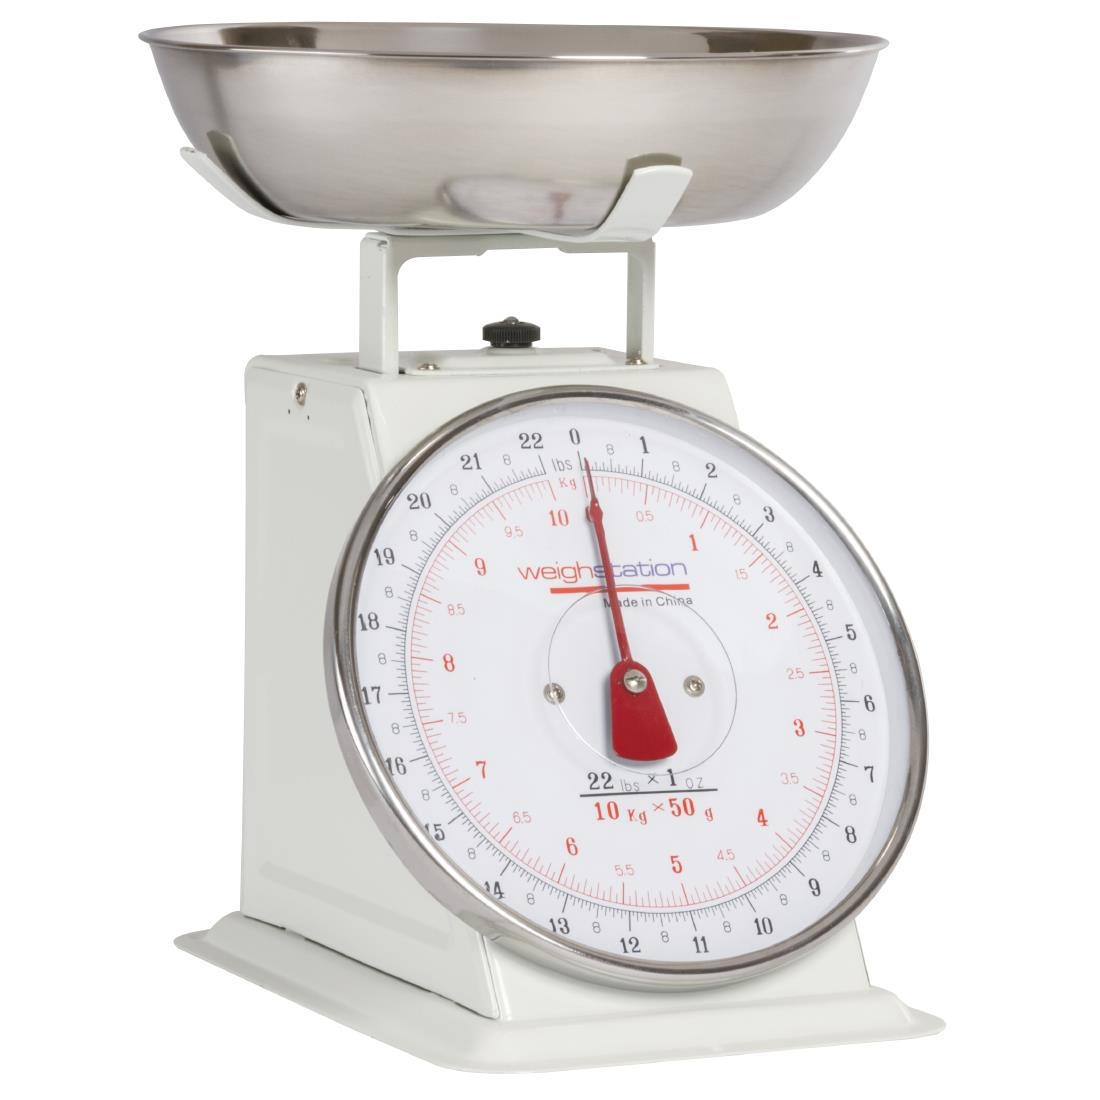 ... Weighstation Kitchen Scale Bowl Top 10kg/22lbs   Gradation 50g/1oz